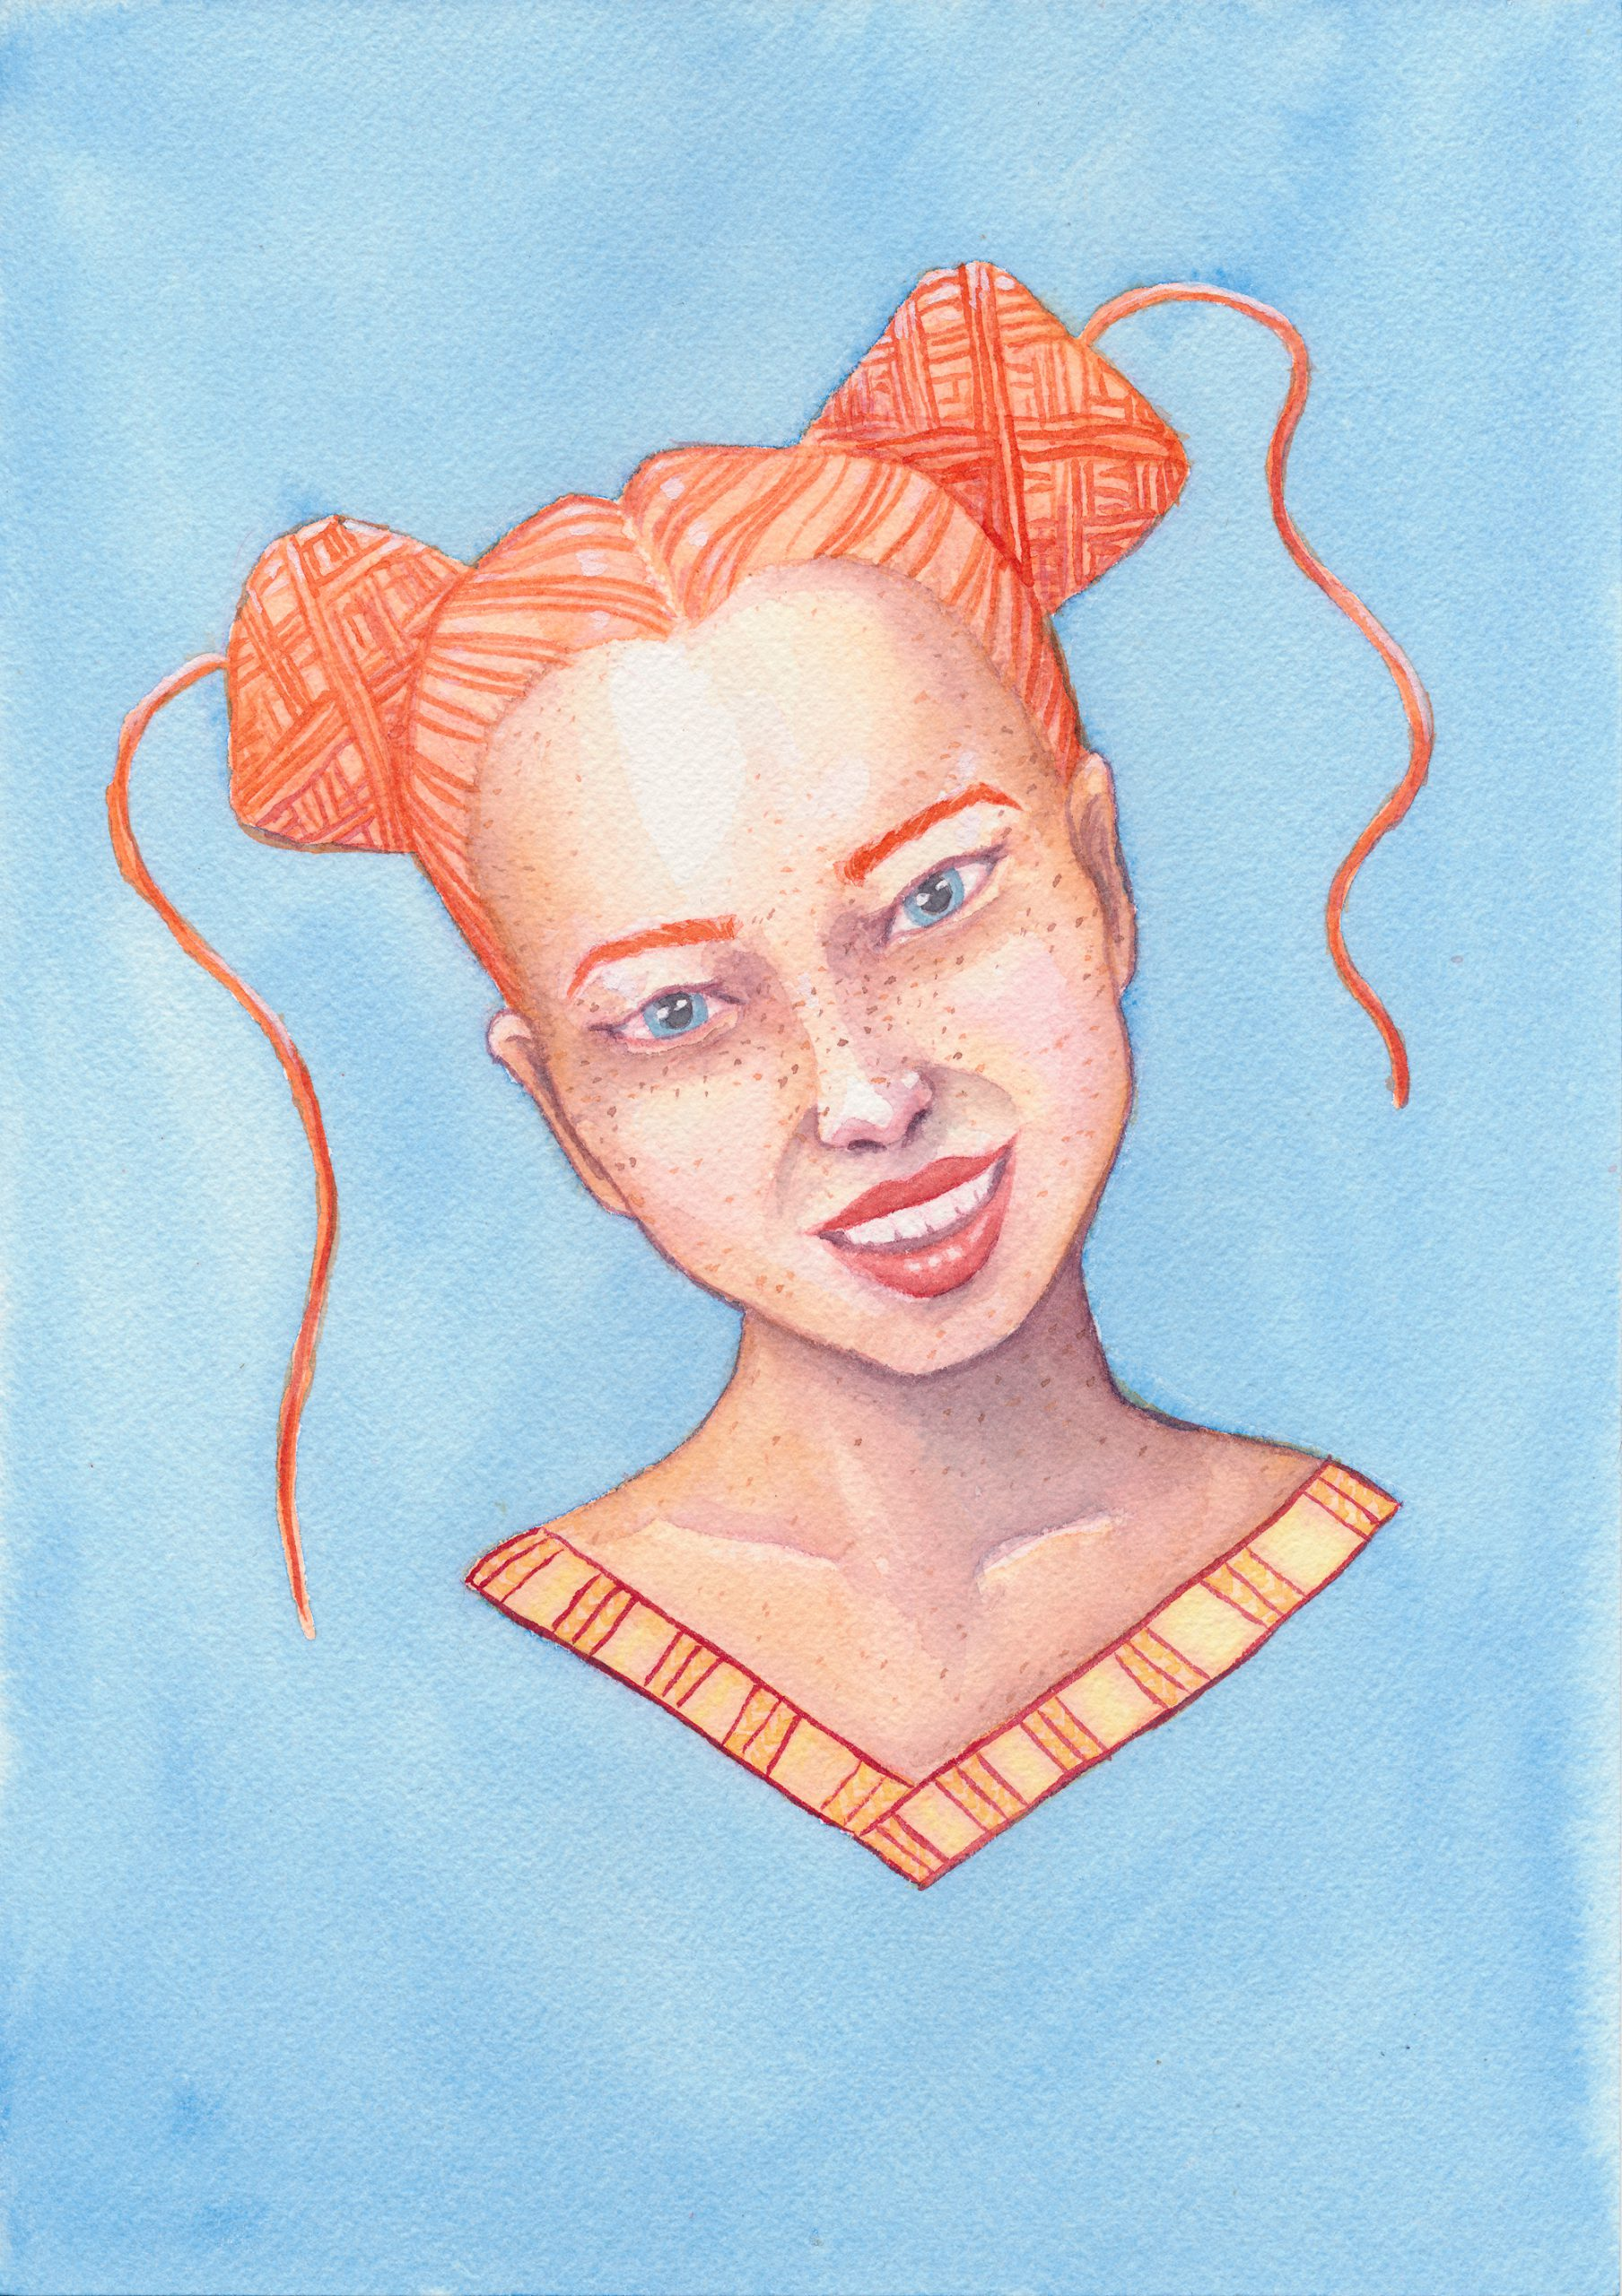 A watercolor painting of a white girl with orange yarn cakes instead of hair